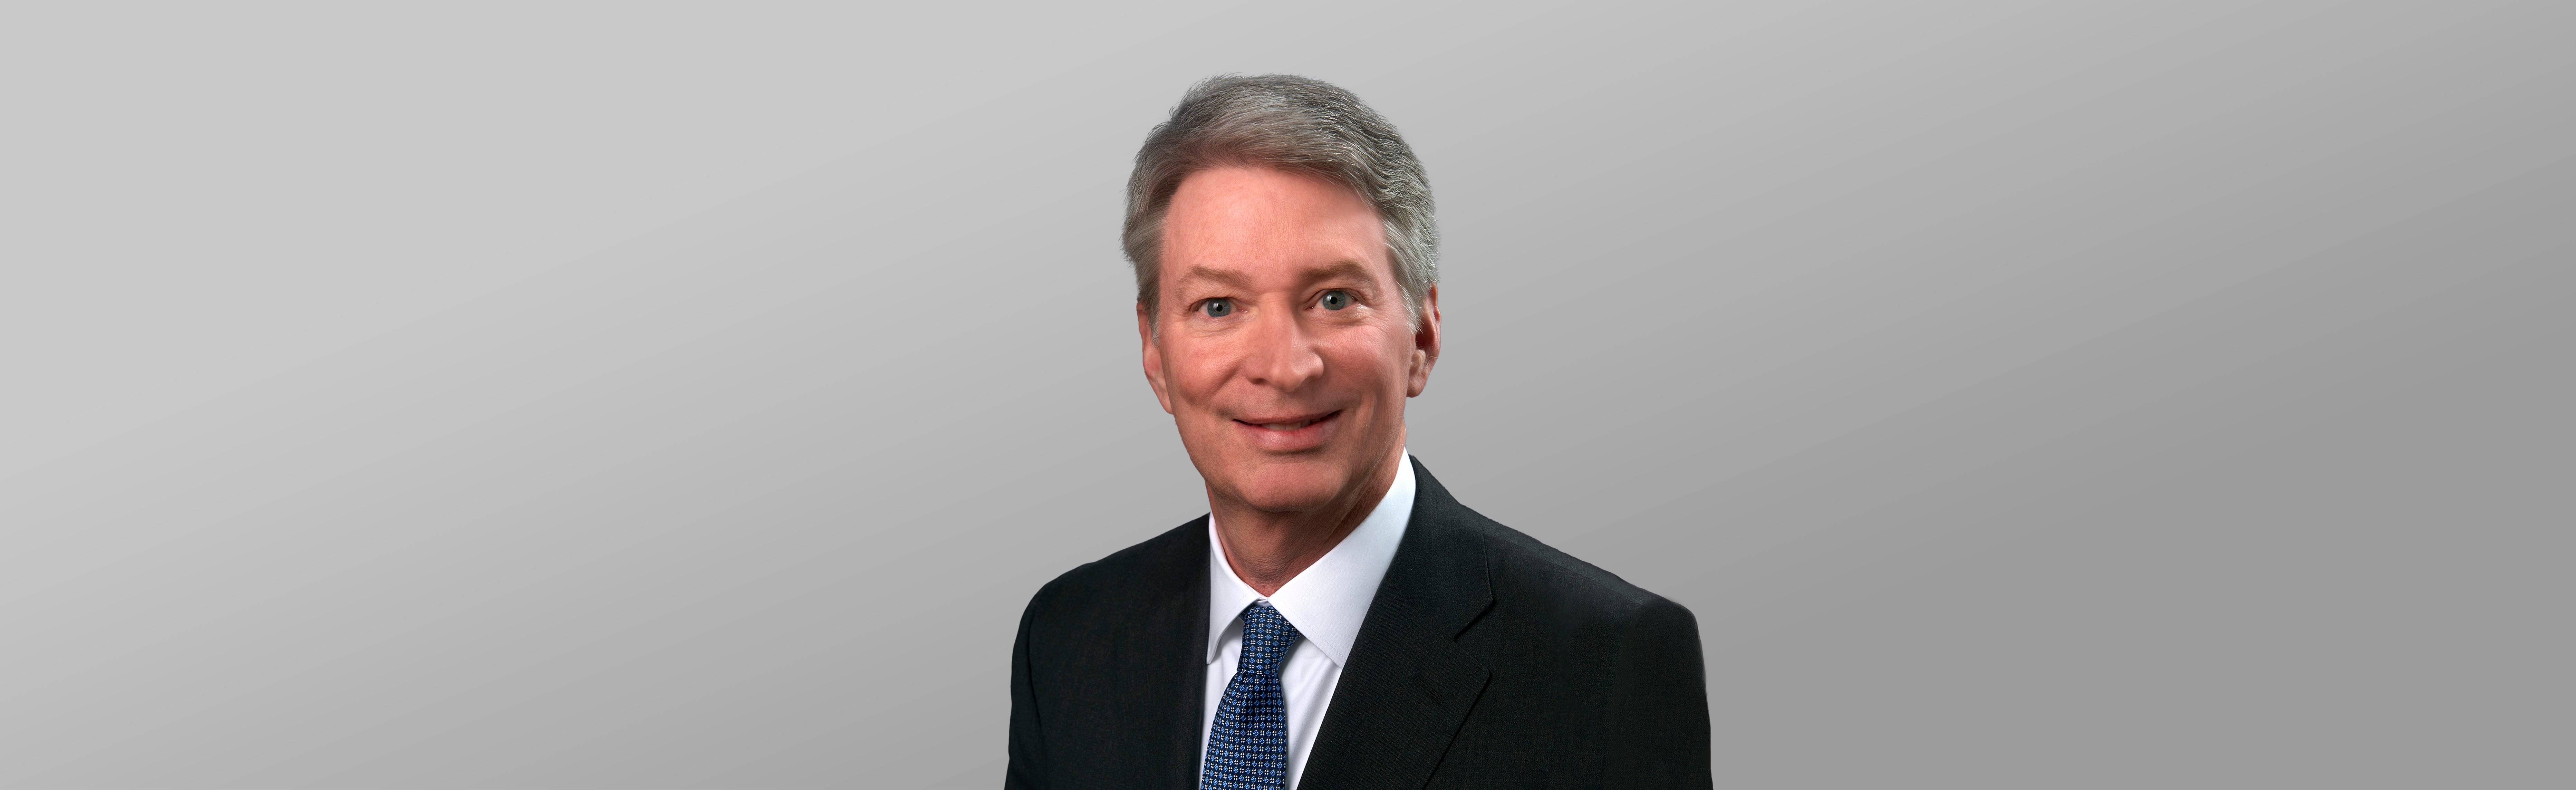 Photo of Joseph Morrissey, Head of Manufacturing & Supply